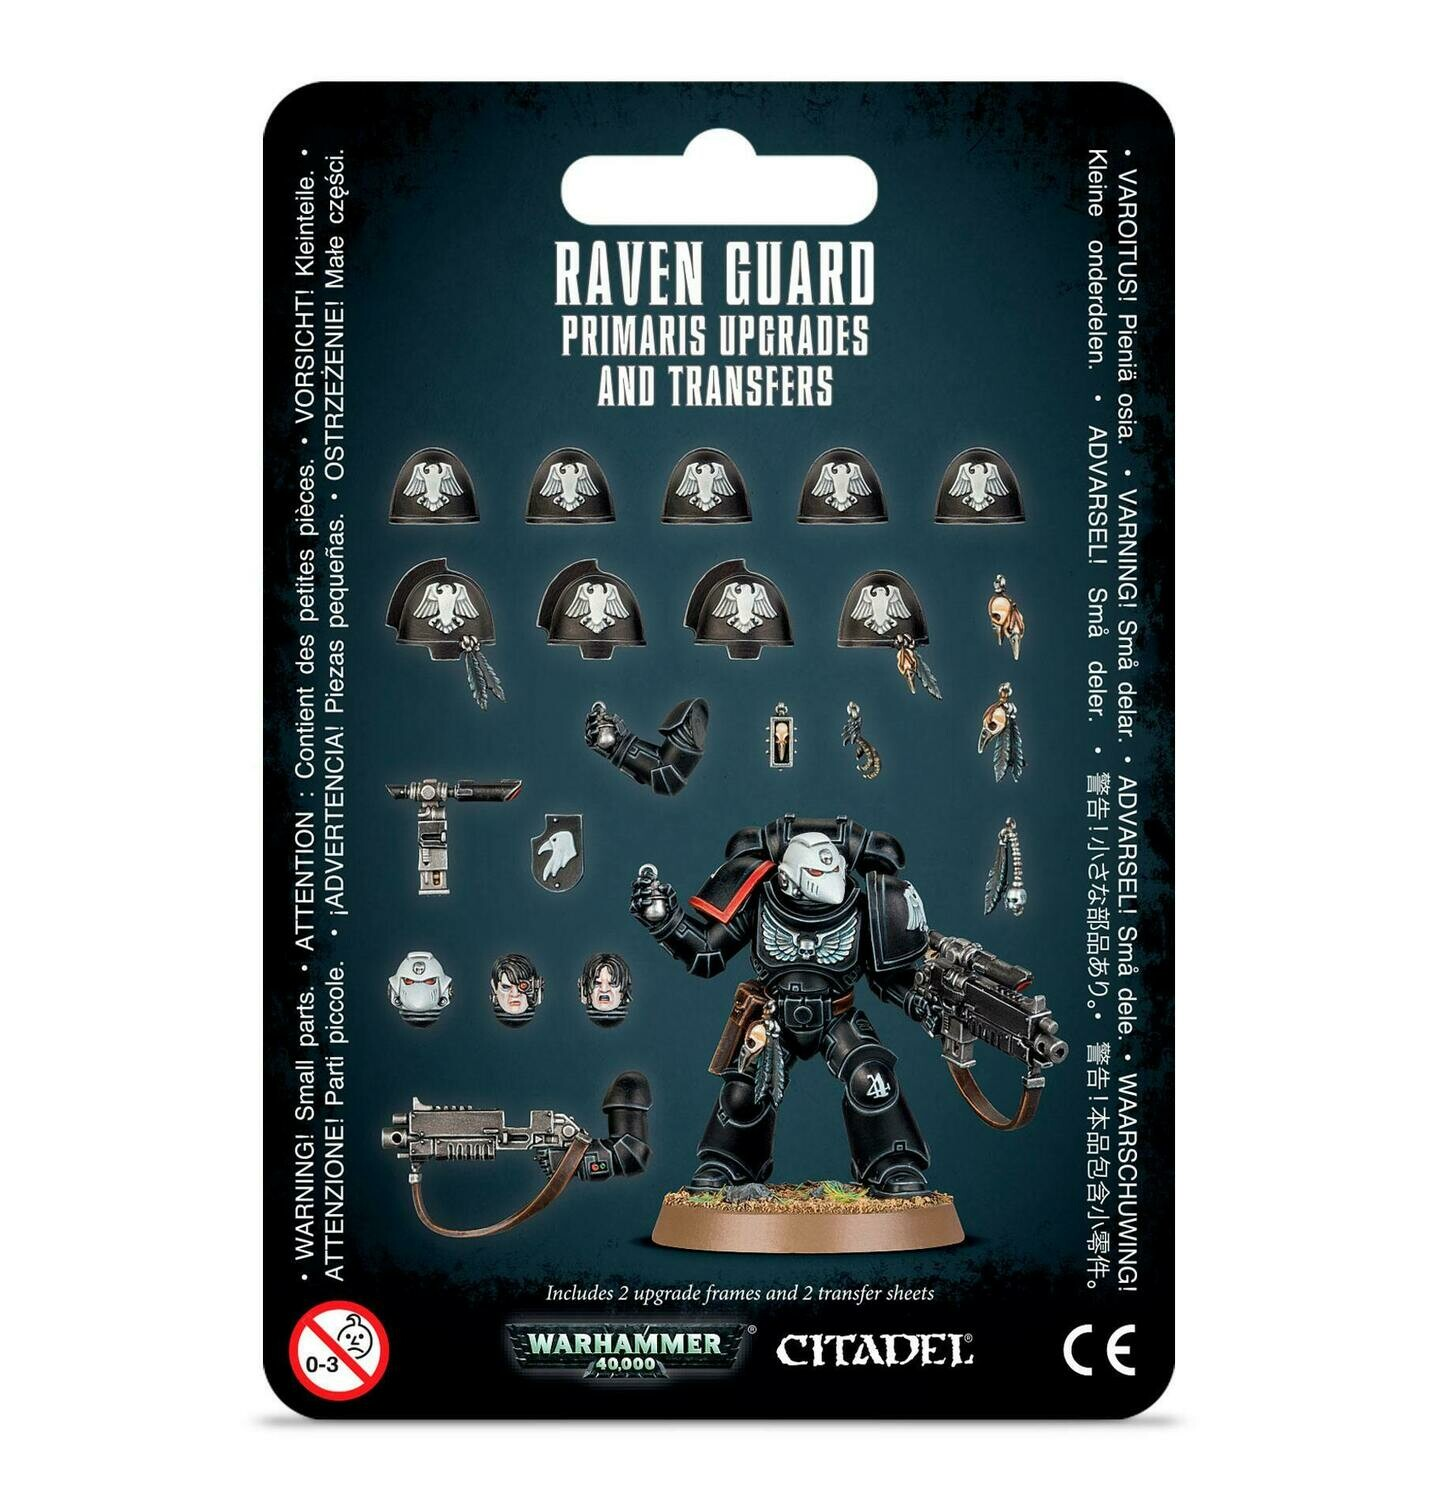 Raven Guard Primaris Upgrades & Transfers